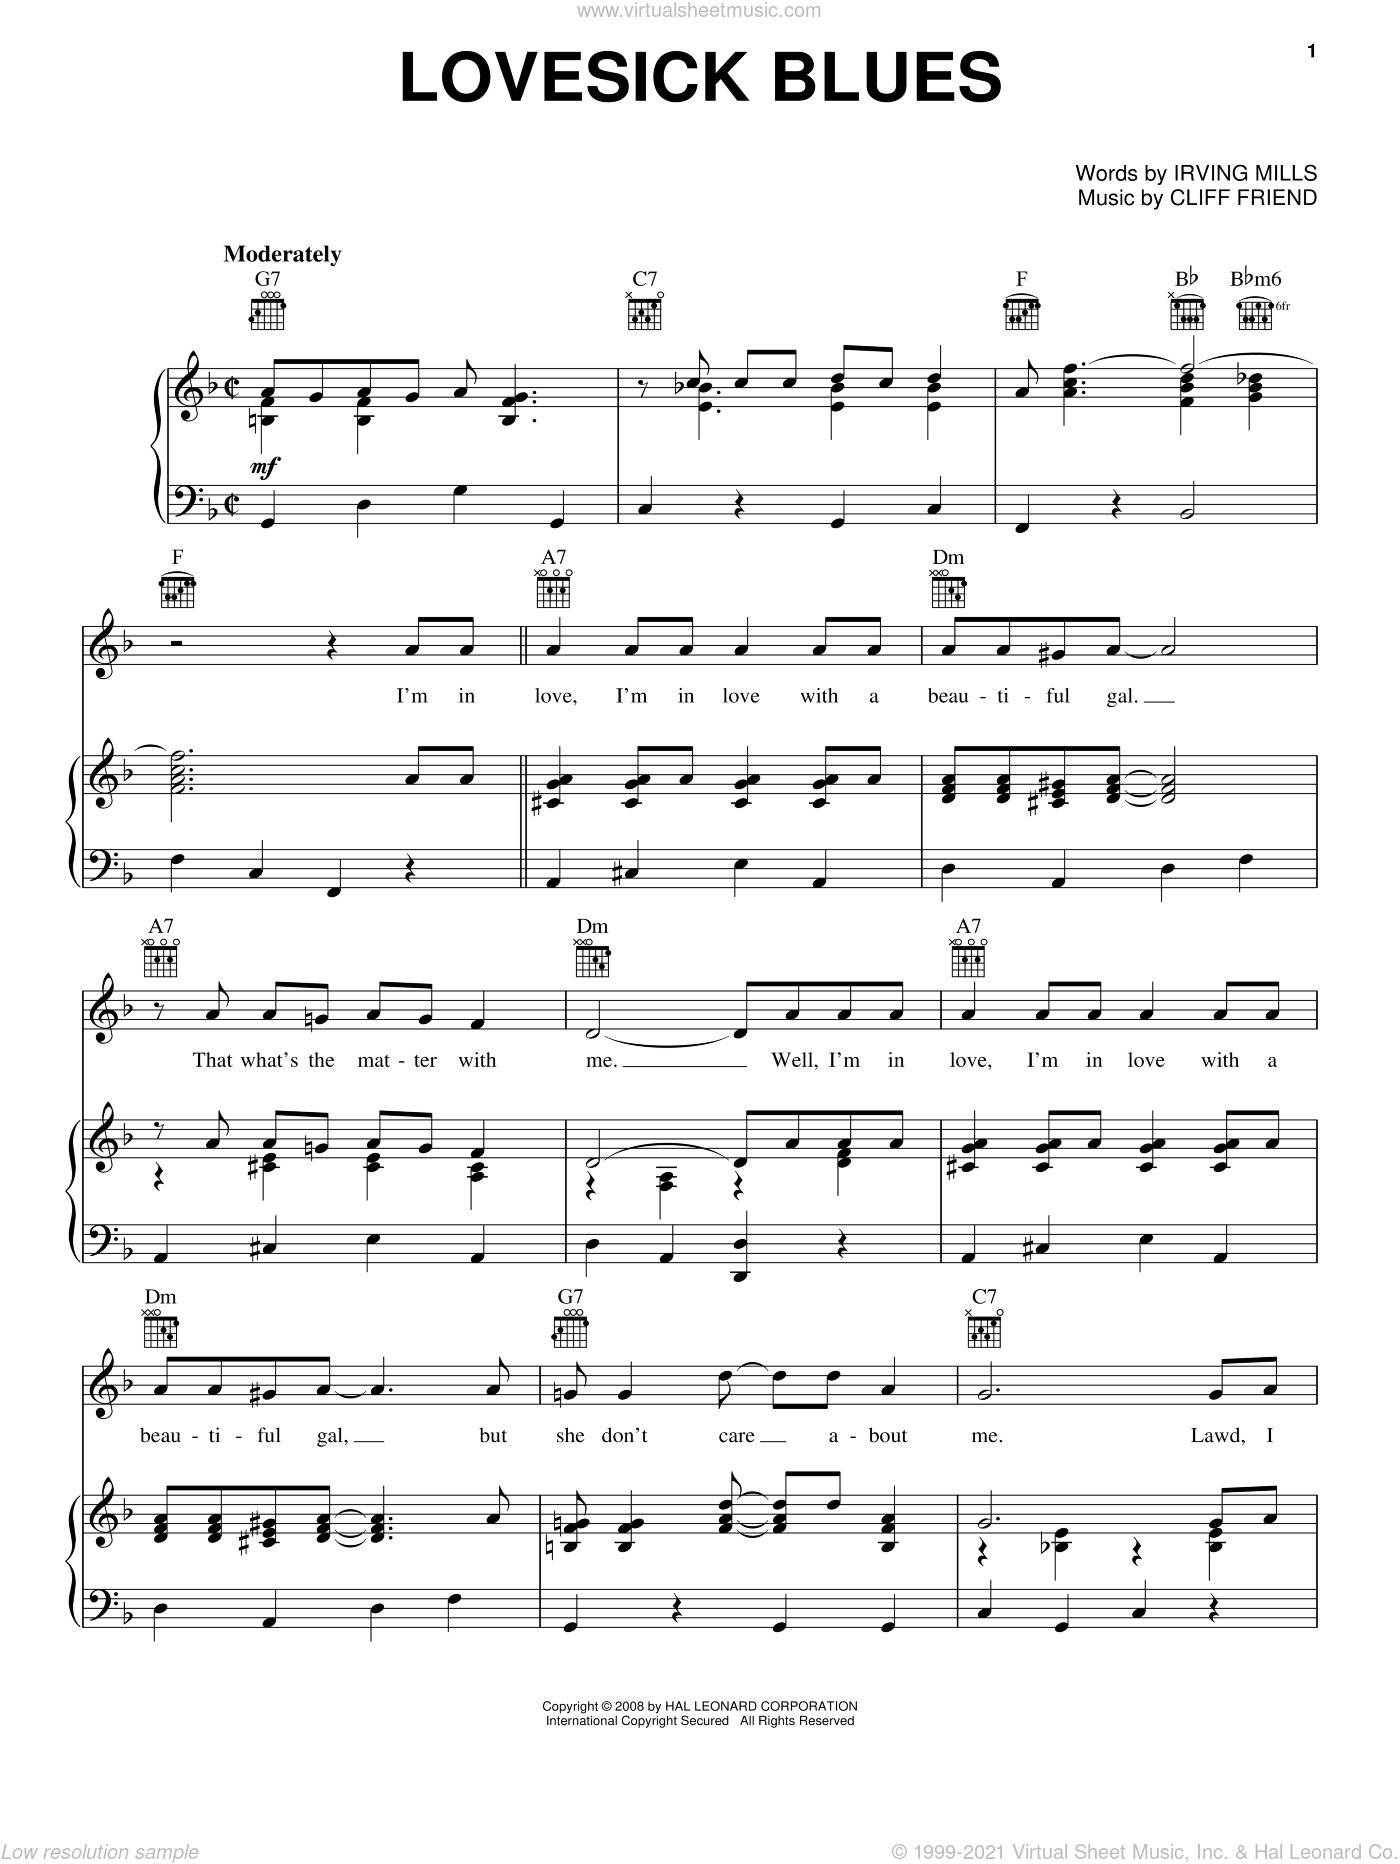 Lovesick Blues sheet music for voice, piano or guitar by Hank Williams, LeAnn Rimes, Patsy Cline, Cliff Friend and Irving Mills, intermediate voice, piano or guitar. Score Image Preview.